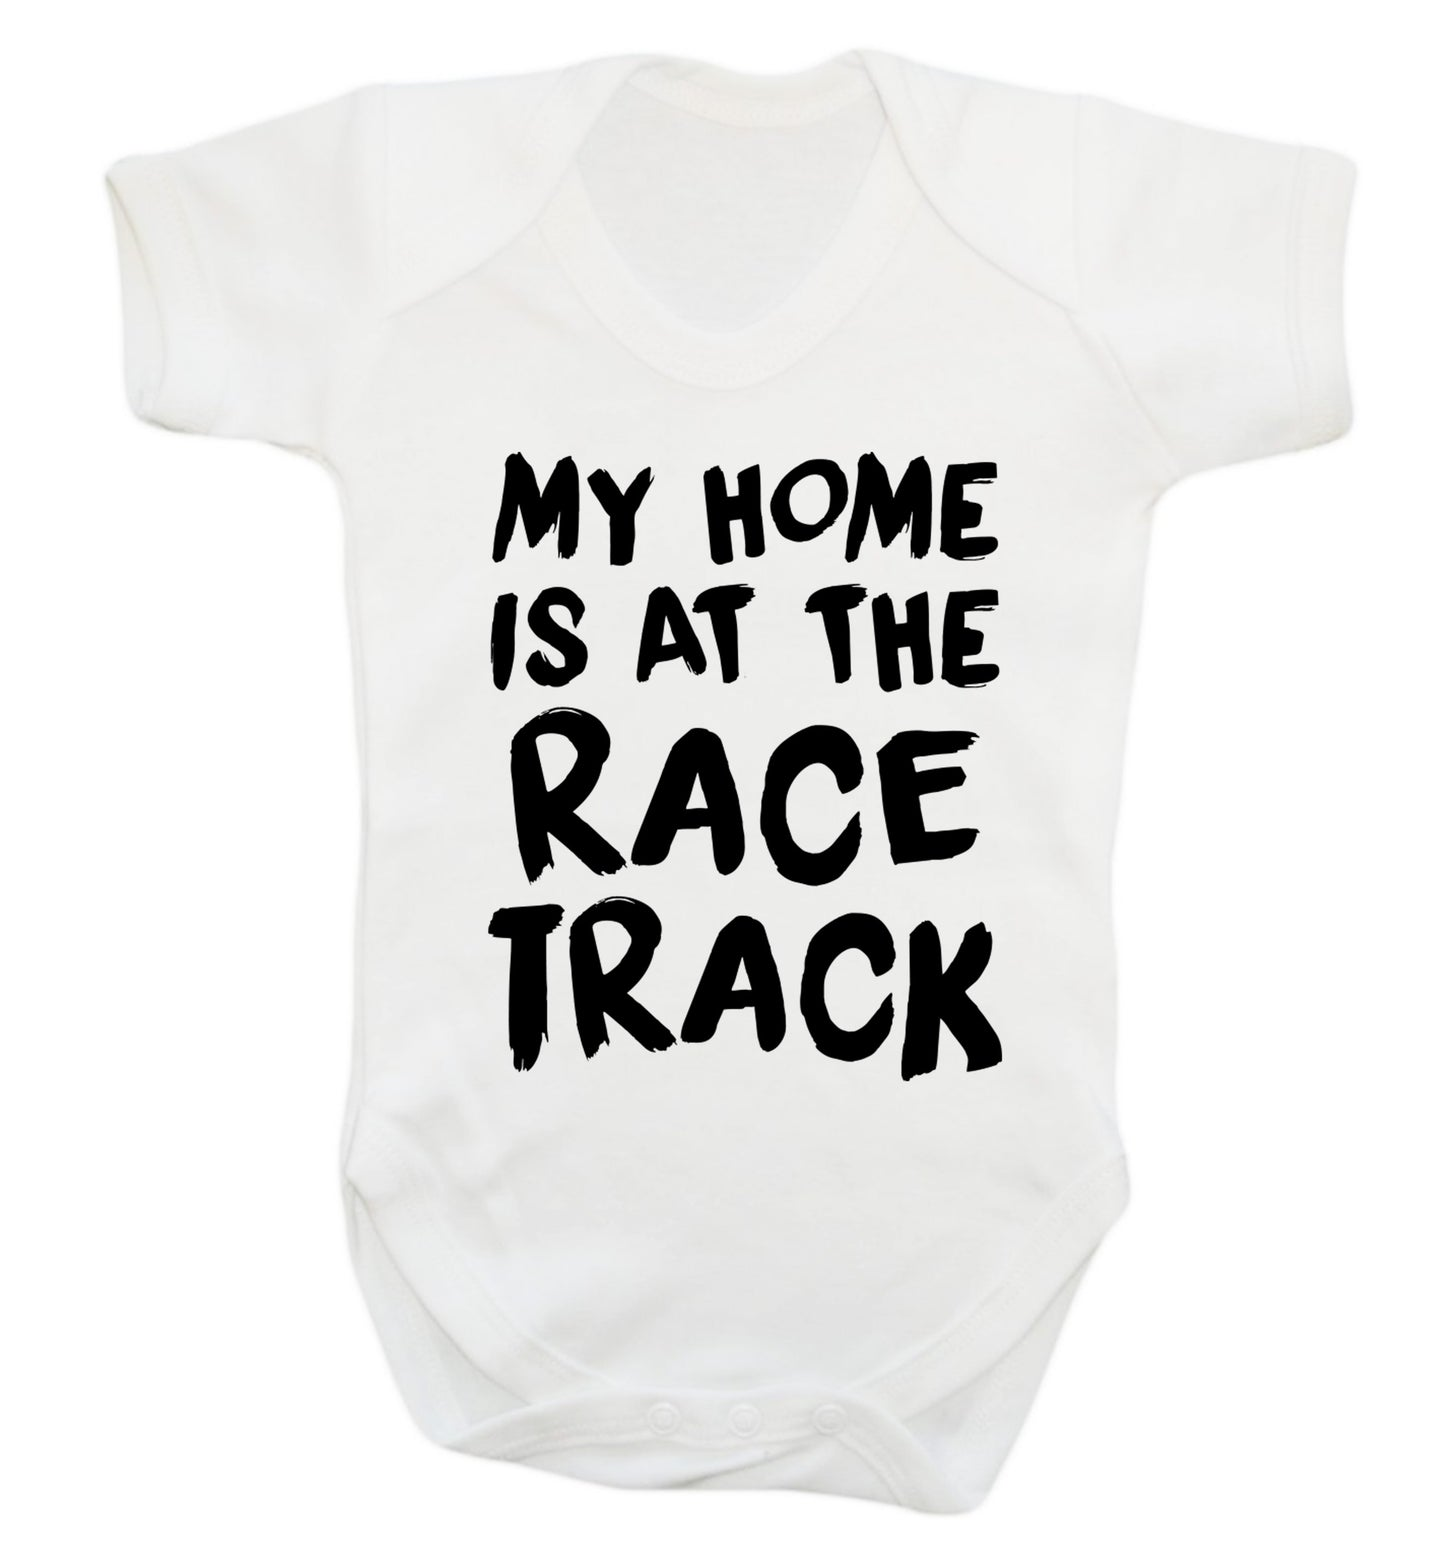 My home is at the race track Baby Vest white 18-24 months